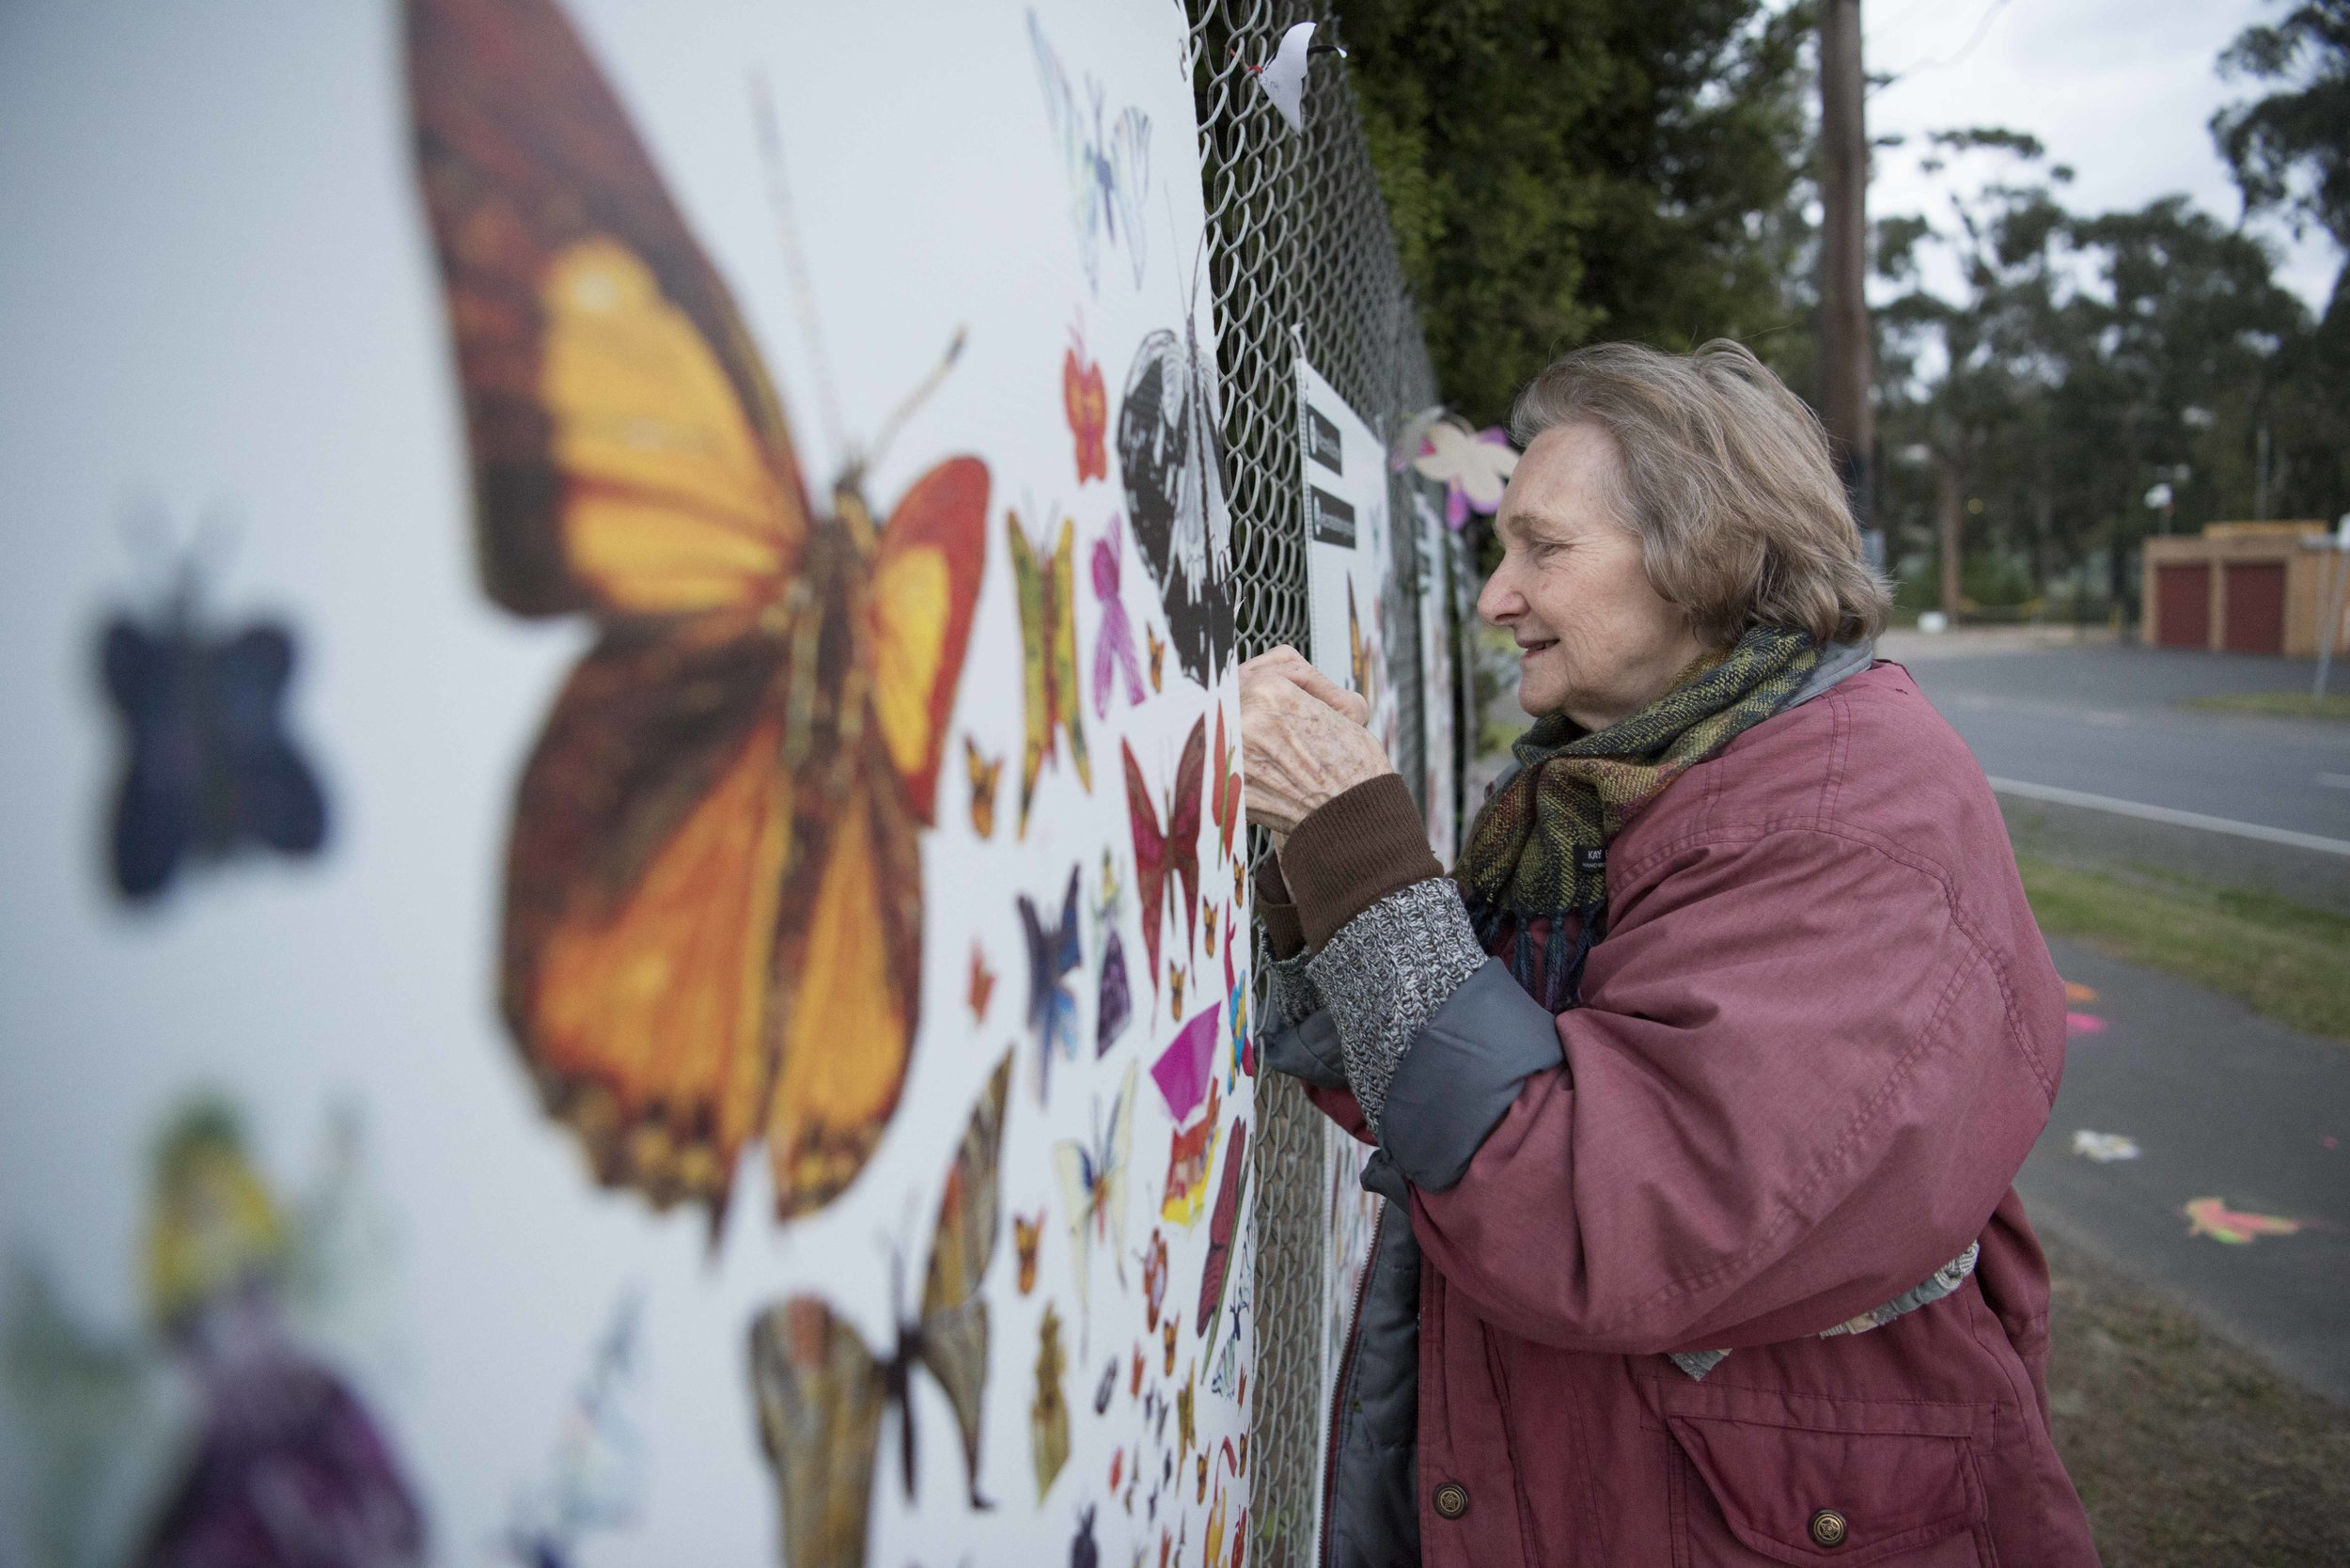 Local artist turned art ninja Janet ties one of her hand-painted butterflies to the fence.